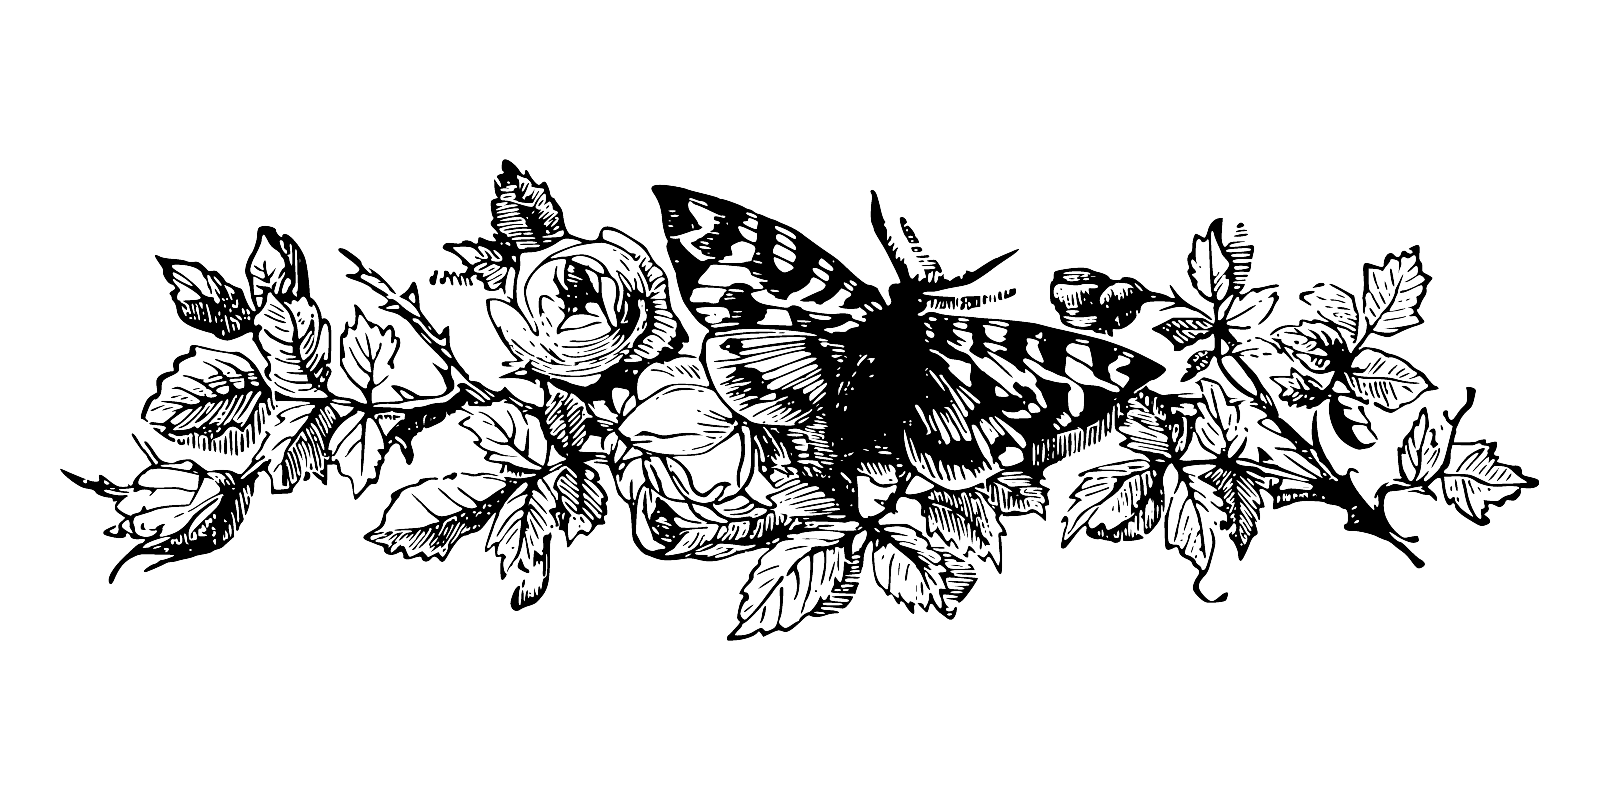 Black and white flower designs free vector download